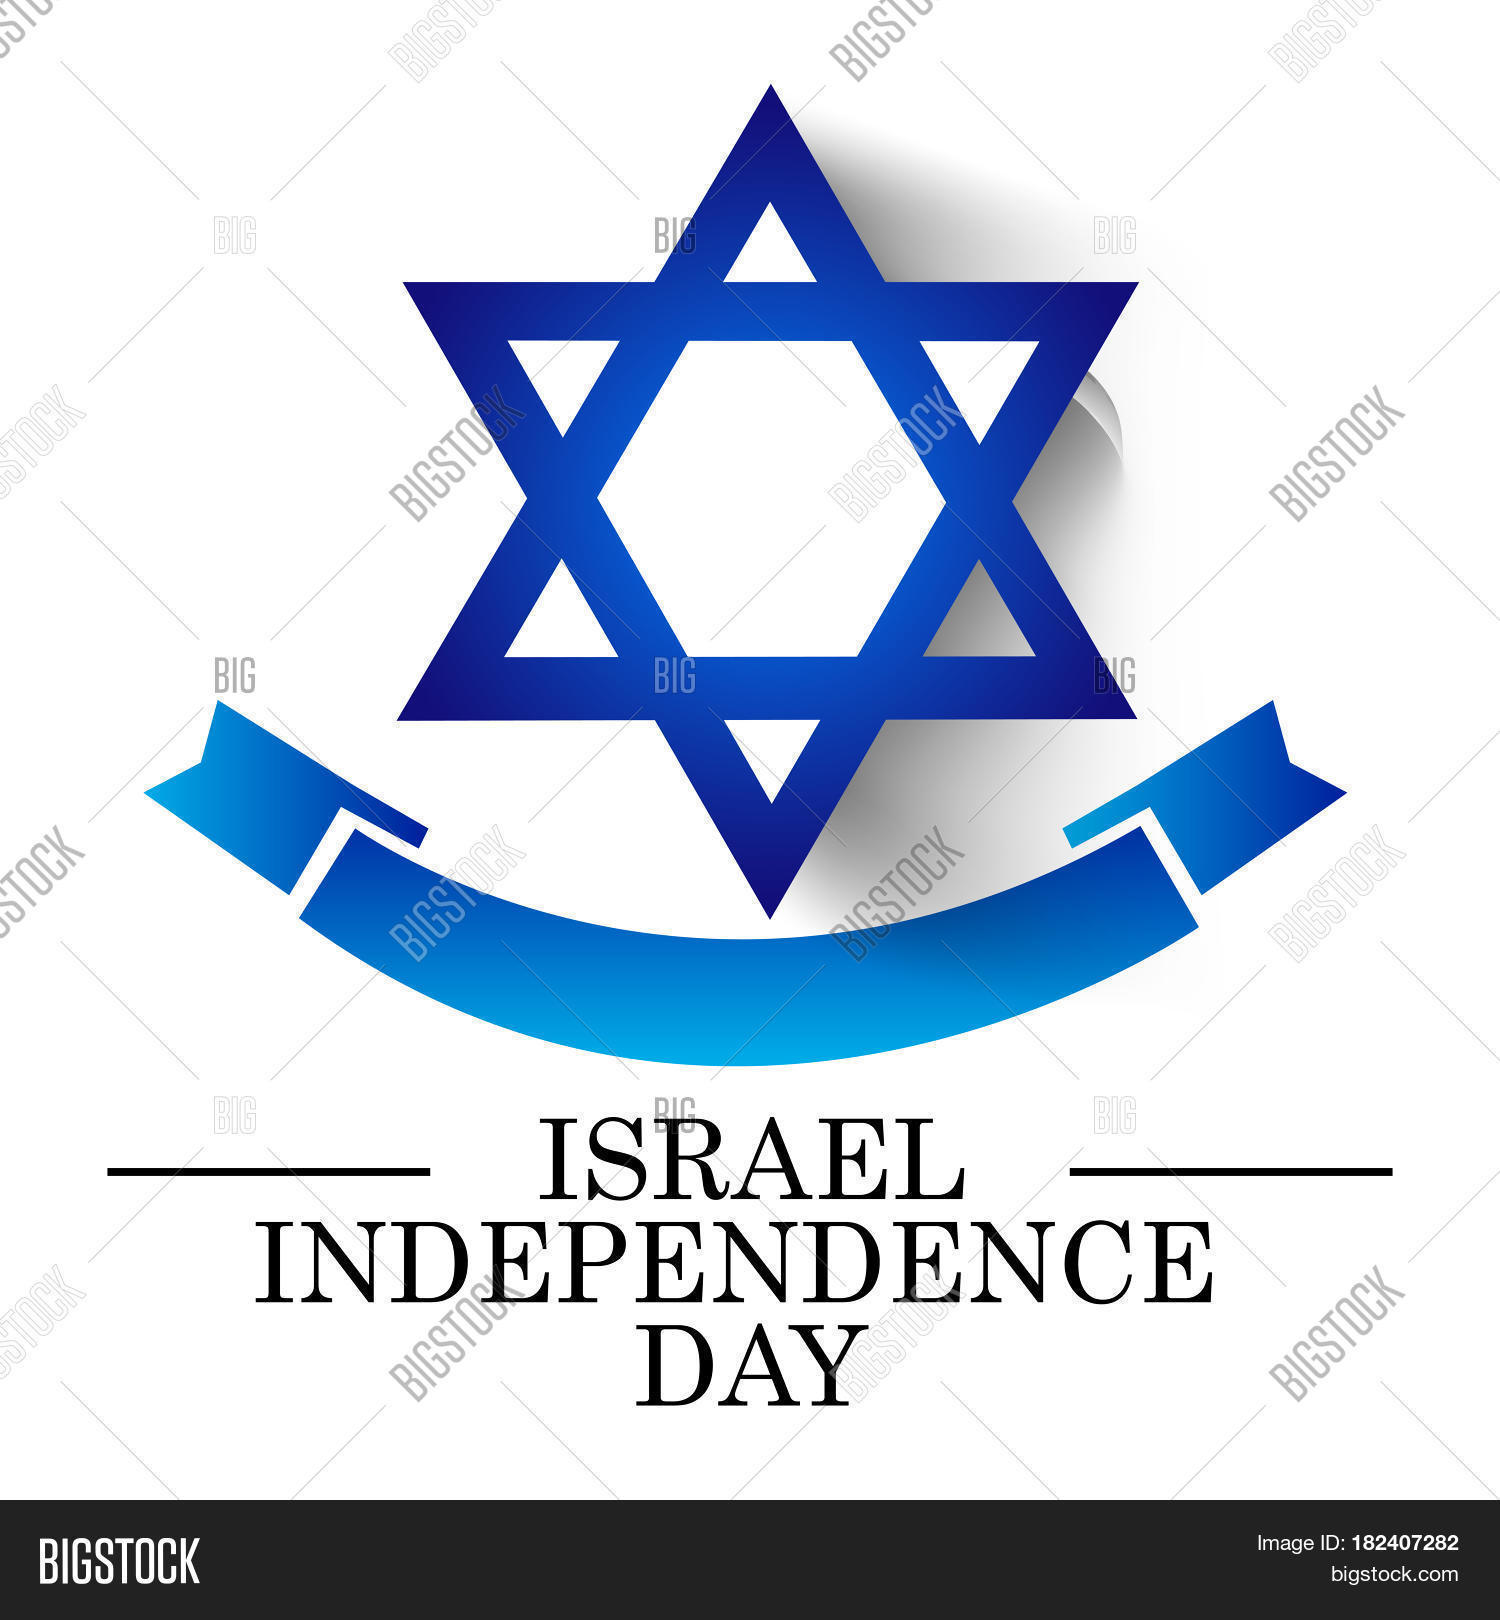 Israel Independence Day 19 April 60 Image Amp Photo